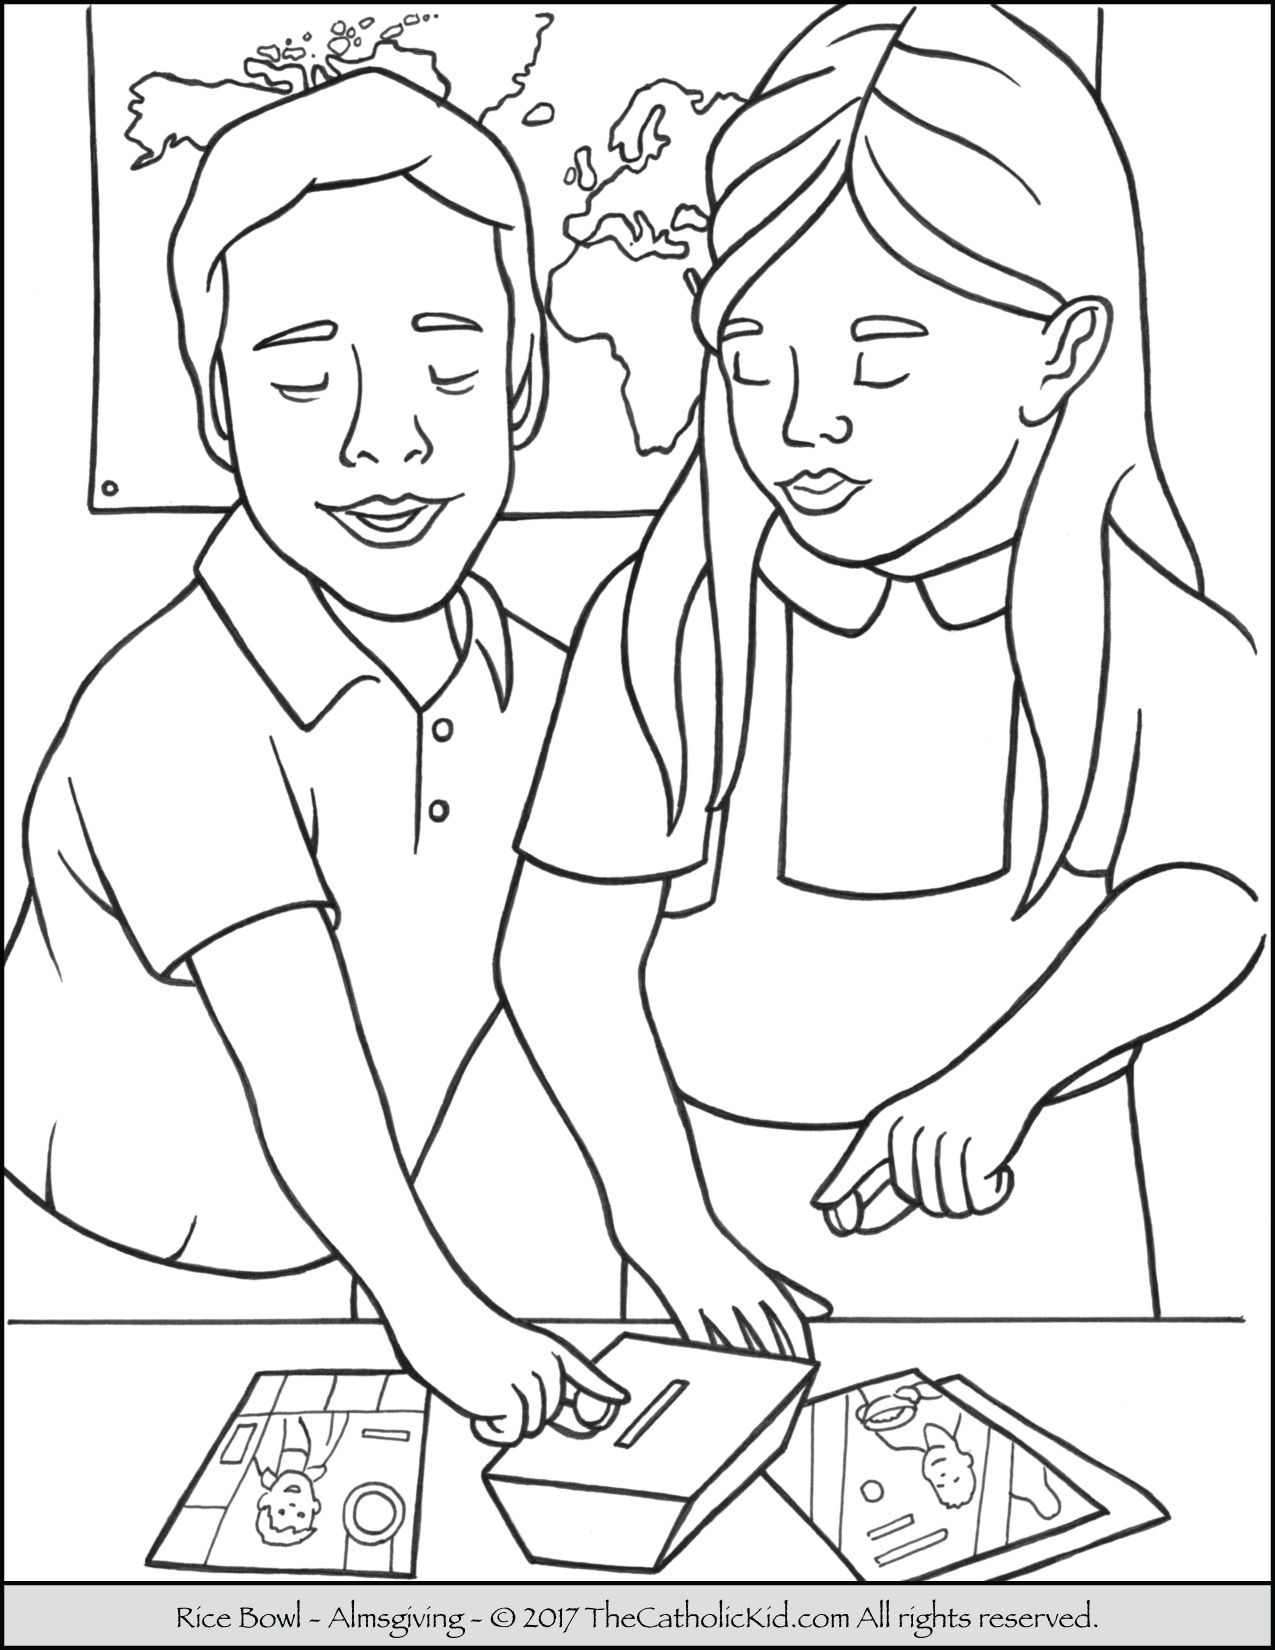 Lent Rice Bowl Coloring Page | Lent for Children for the Liturgical ...